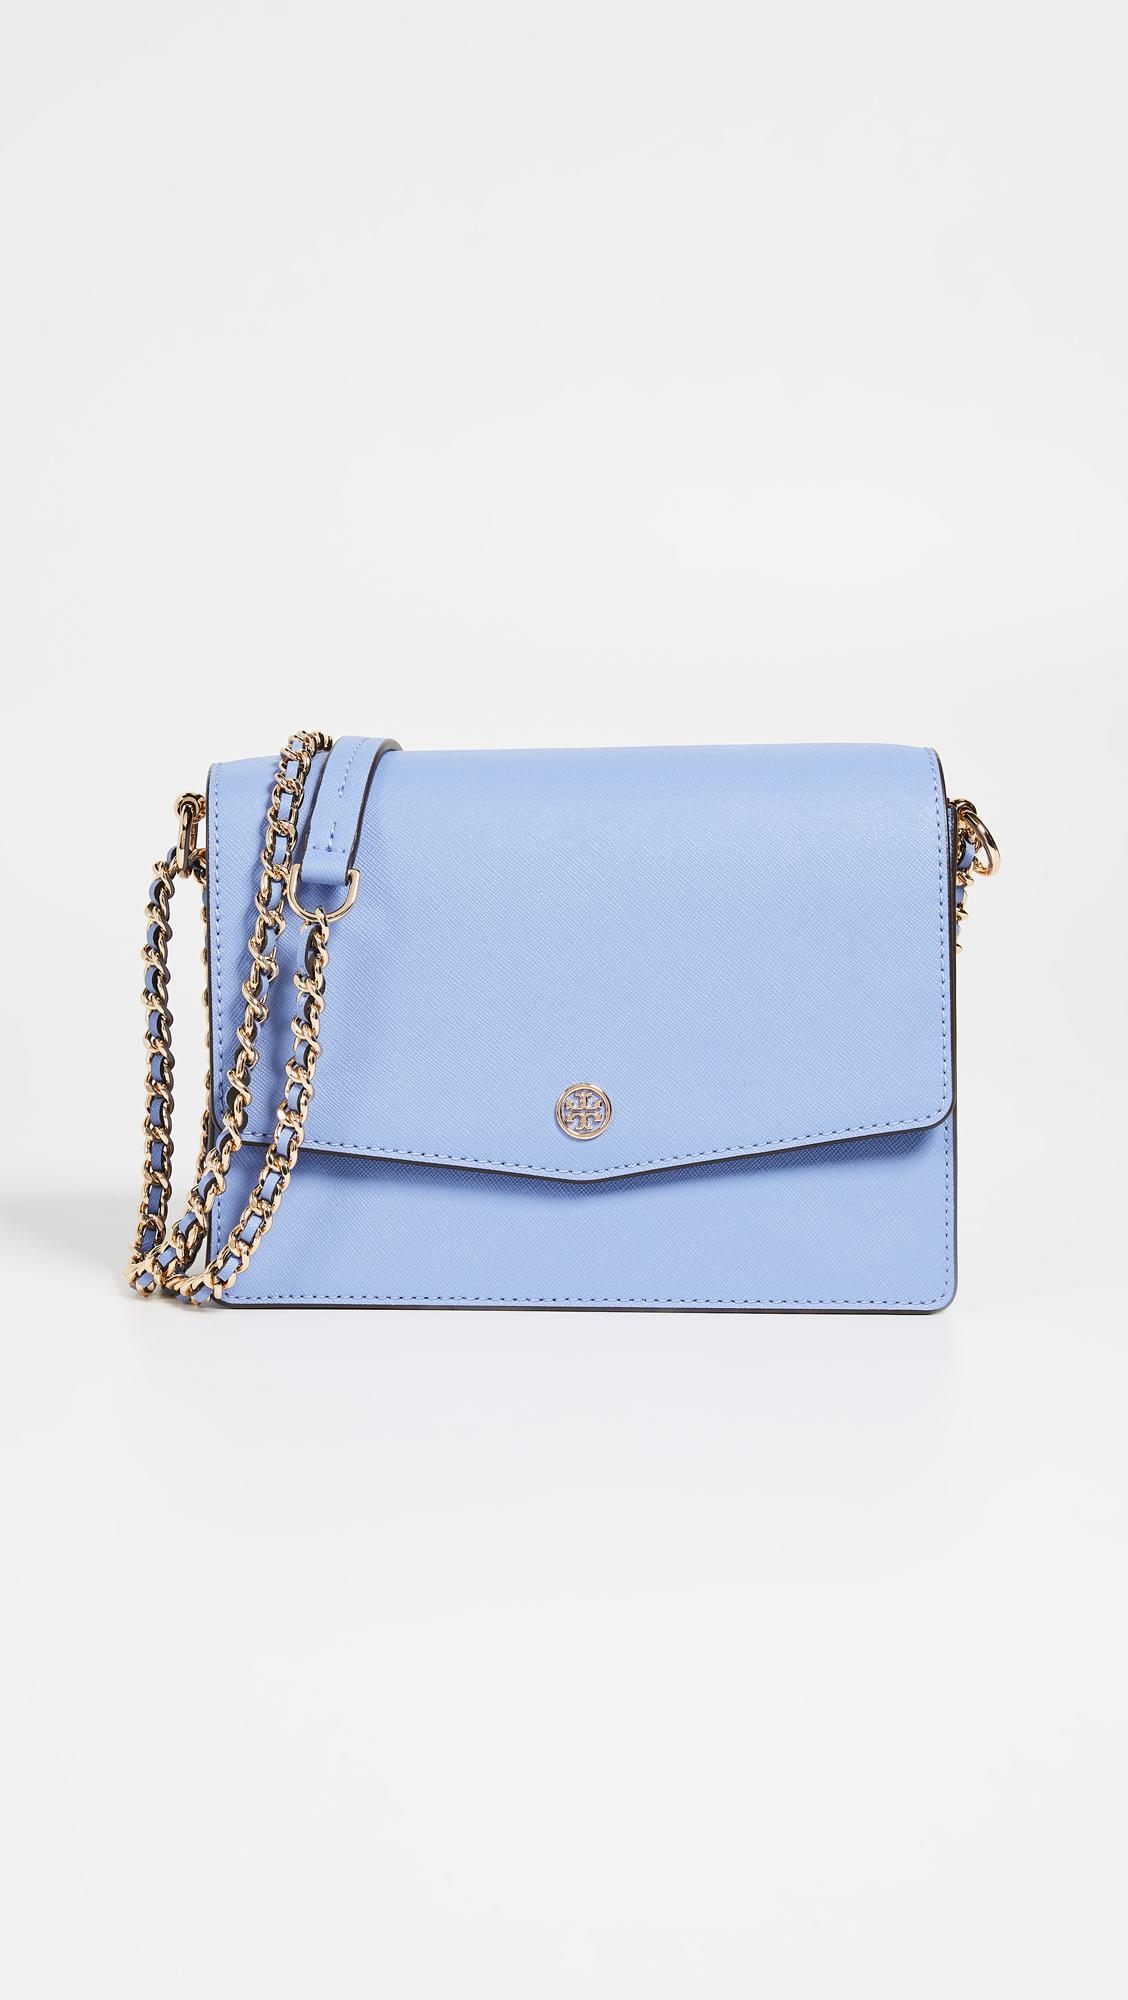 c82a9cbe1ca Tory Burch Robinson Convertible Shoulder Bag in Blue - Lyst